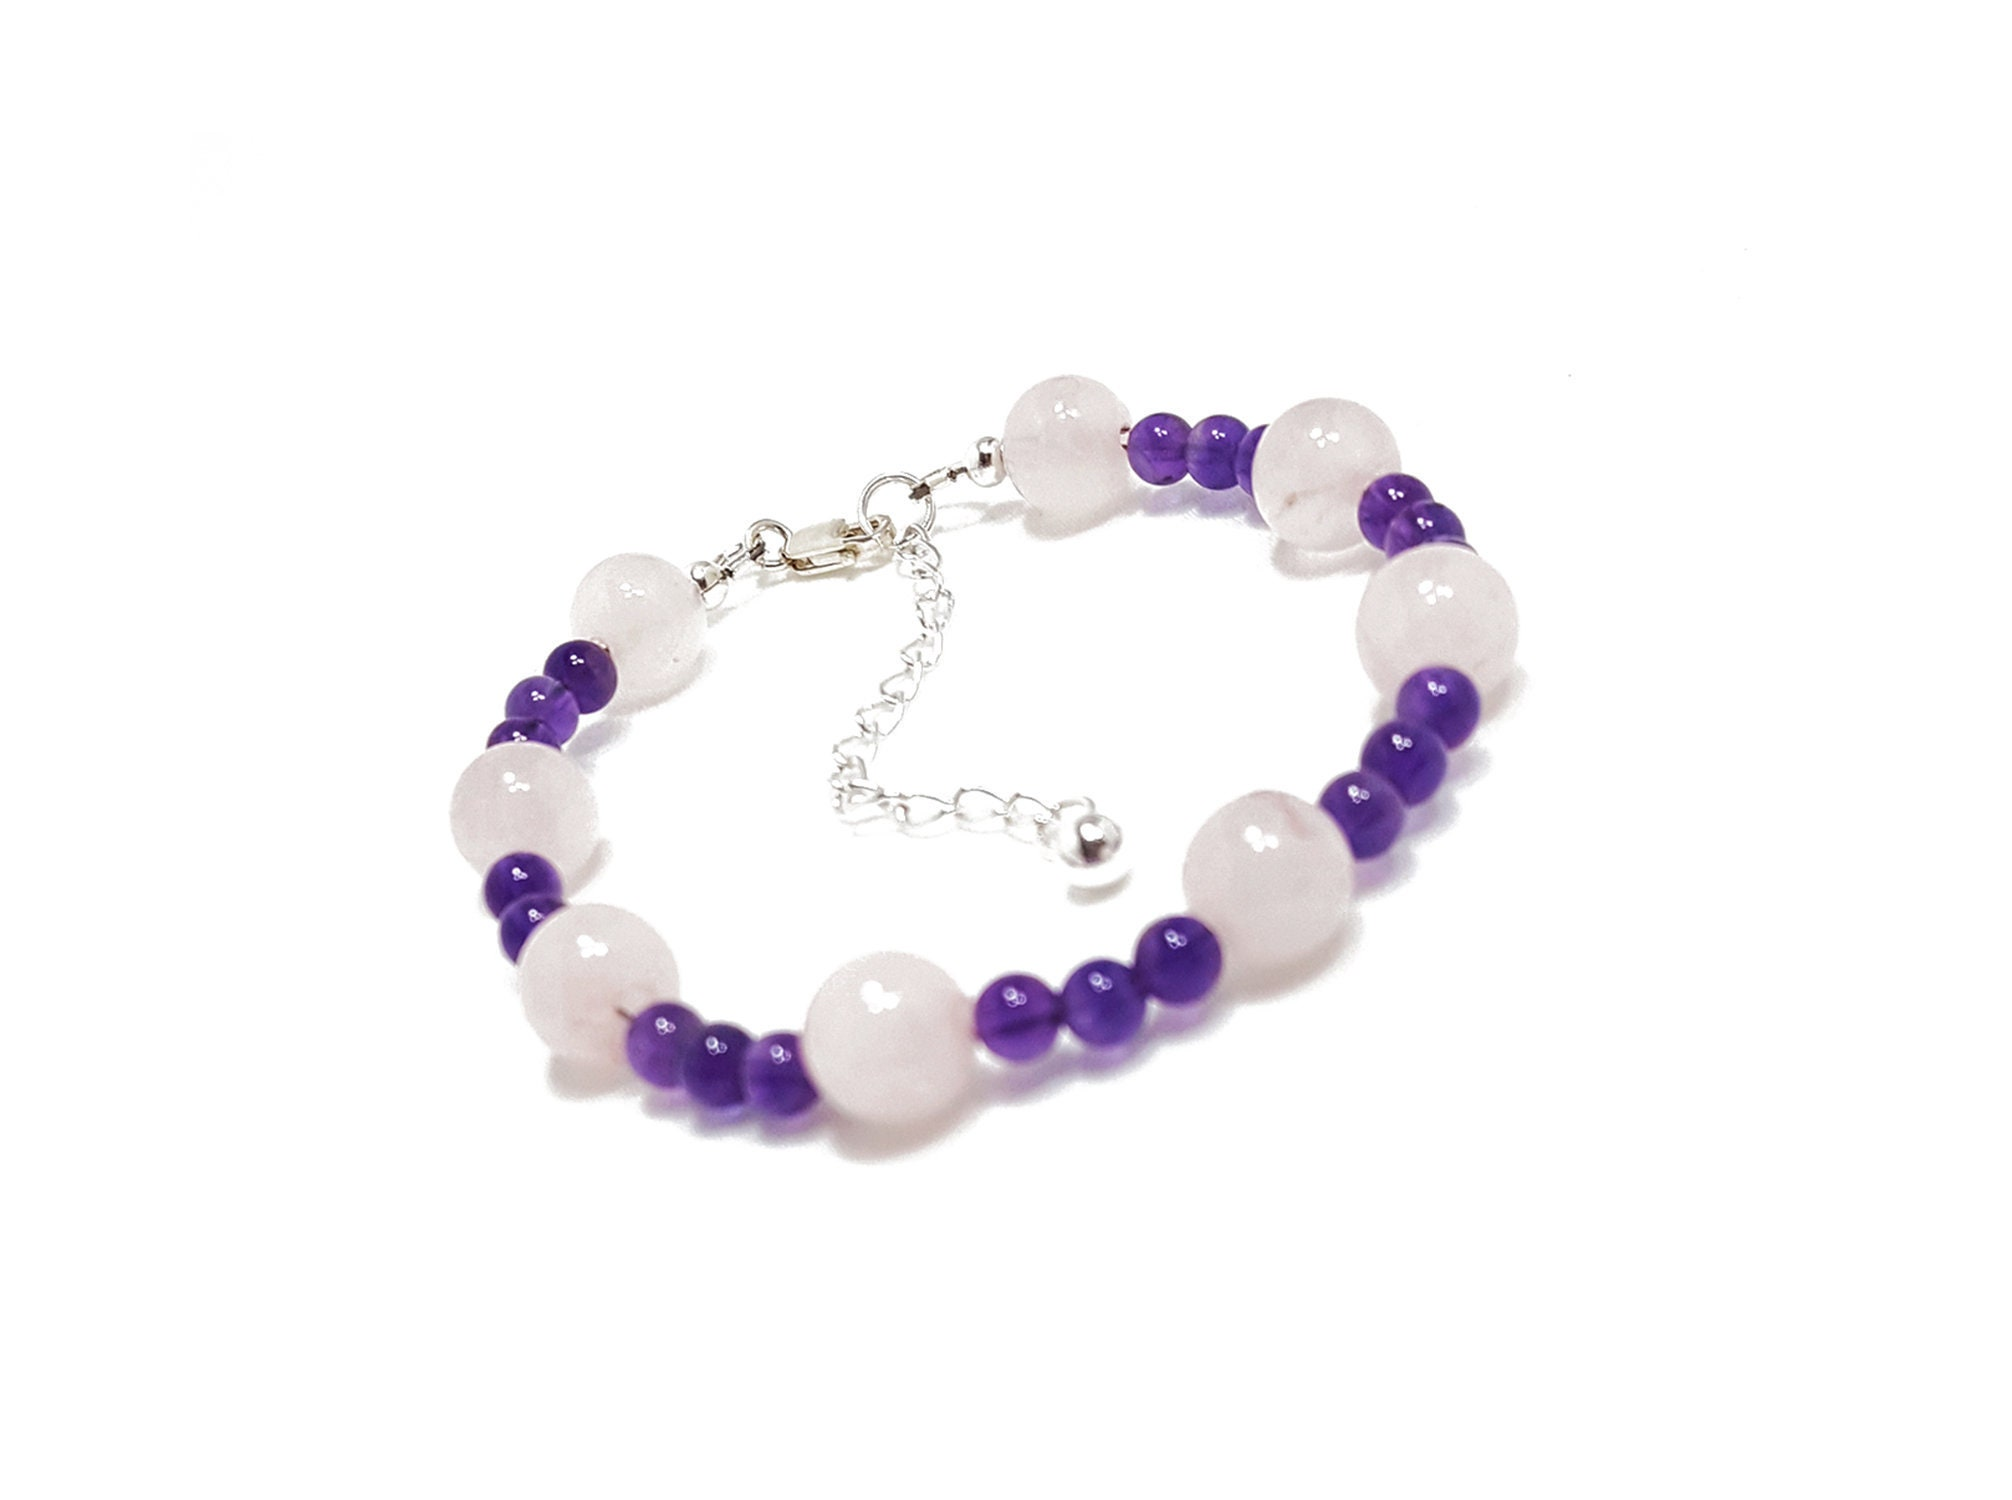 aaeed74543 Love + Protection Bracelet  Rose Quartz   Amethyst Gemstone Beads + 925  Silver Chain and Clasp.